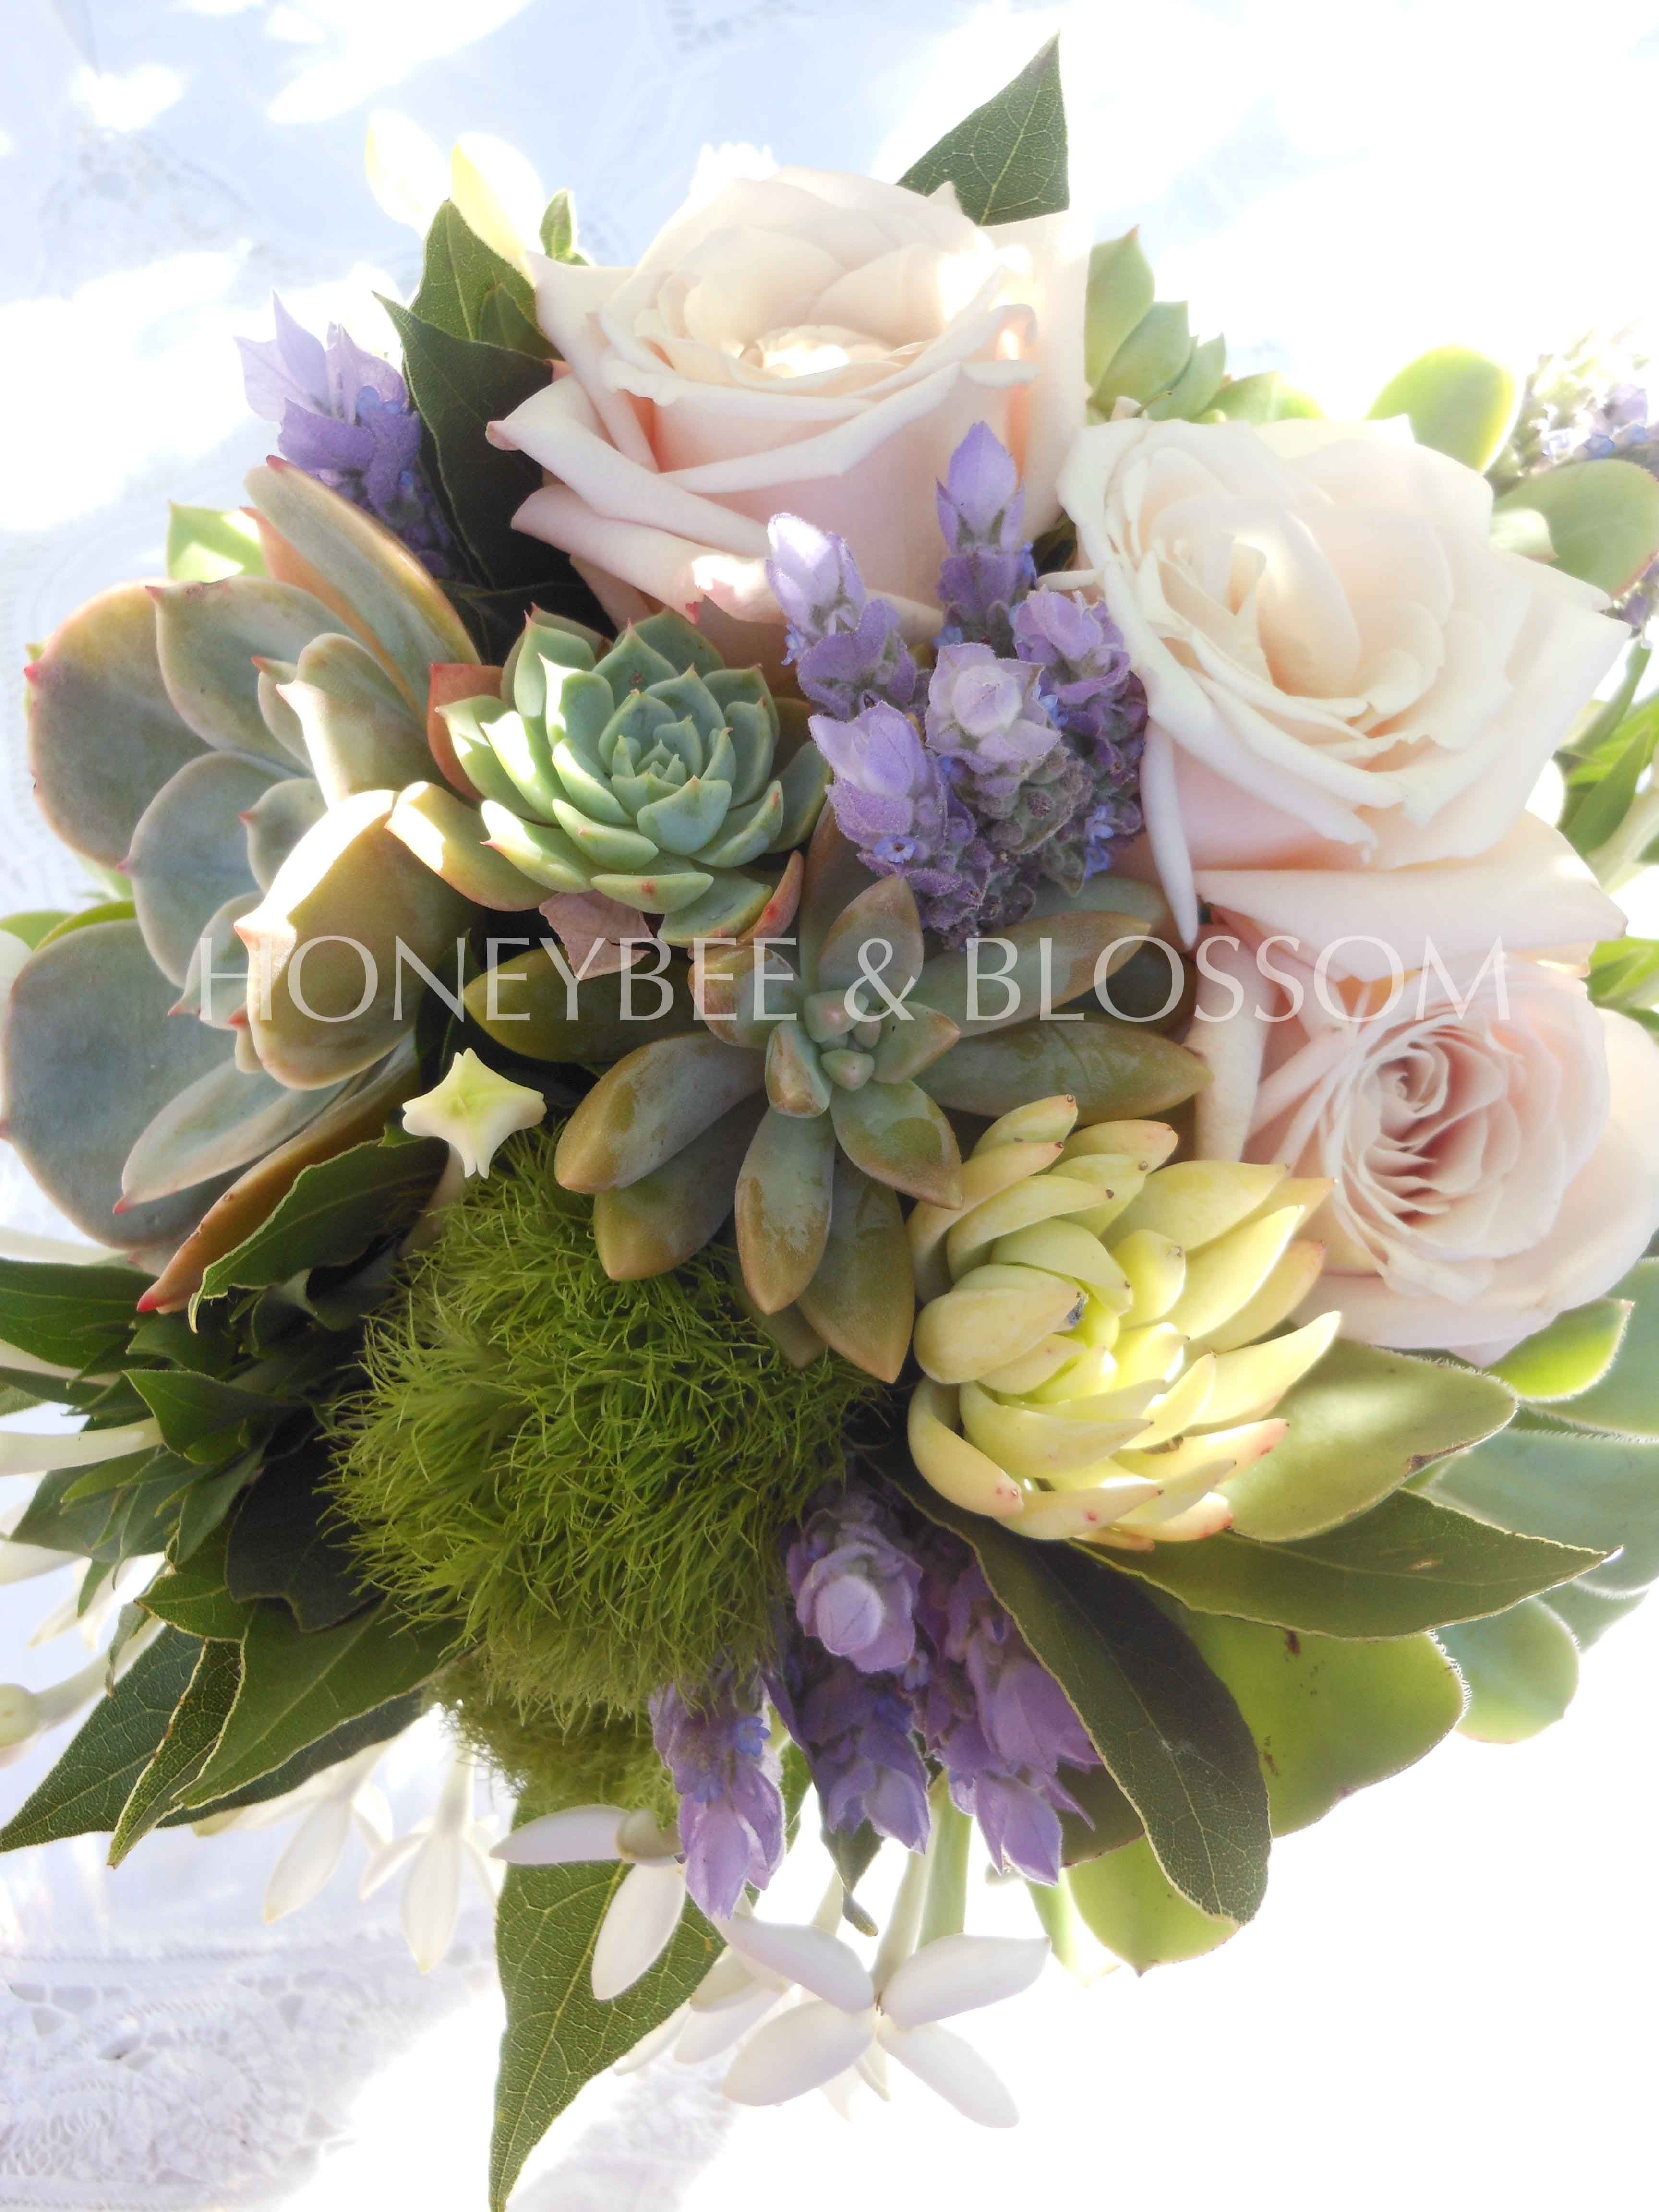 Champagne roses succulents lavender bouvardia and green trick carnation